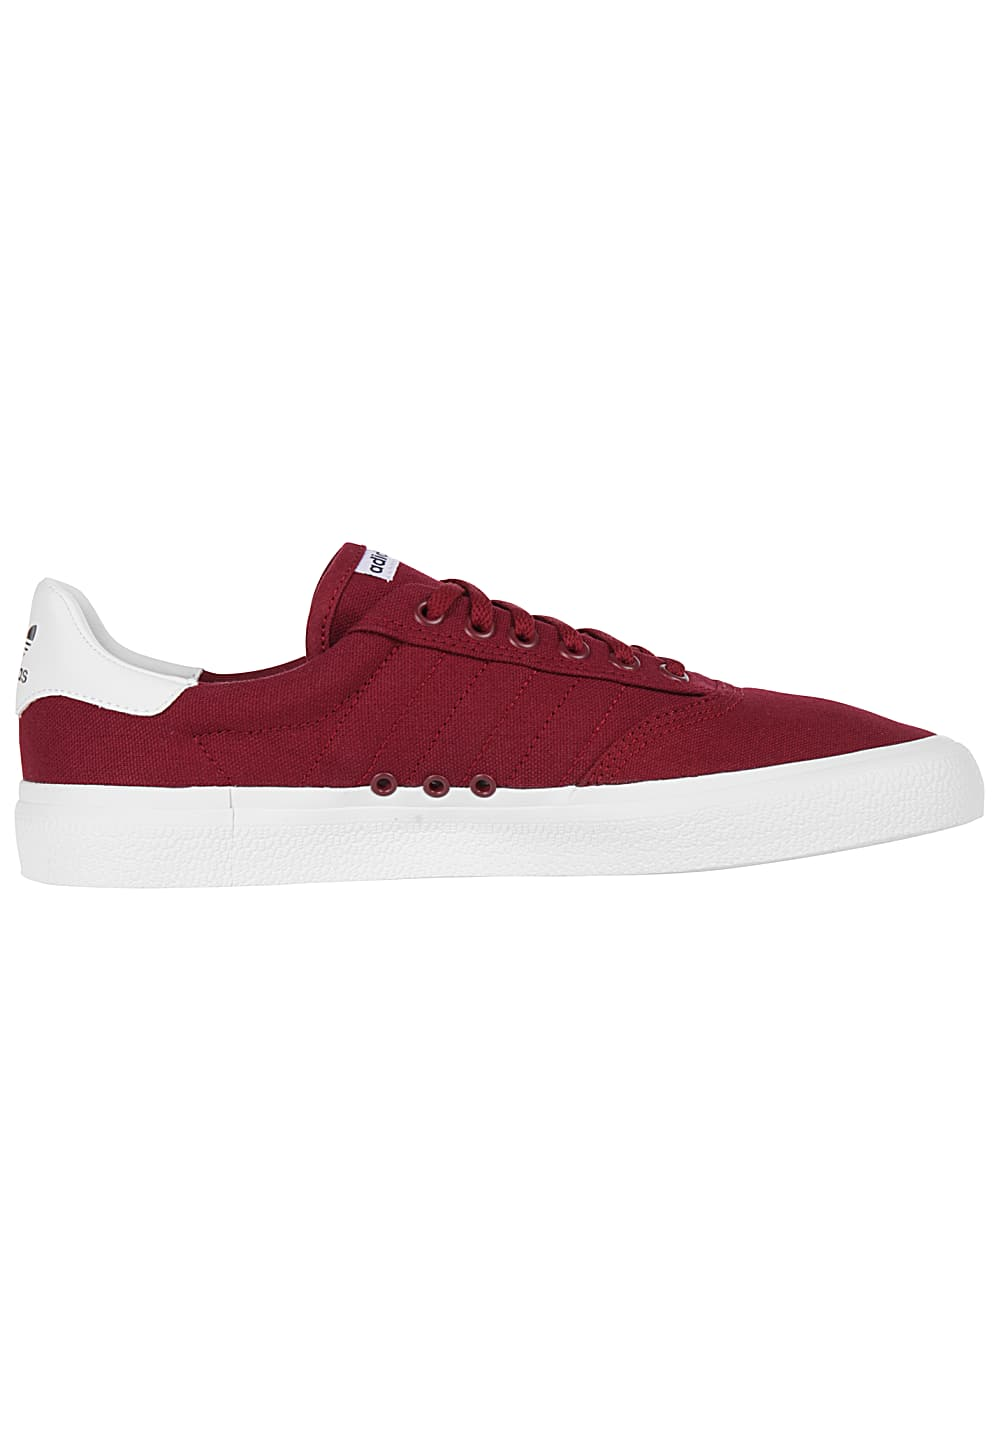 f8075f66a1e Adidas Skateboarding 3Mc - Sneakers voor Heren - Rood - Planet Sports